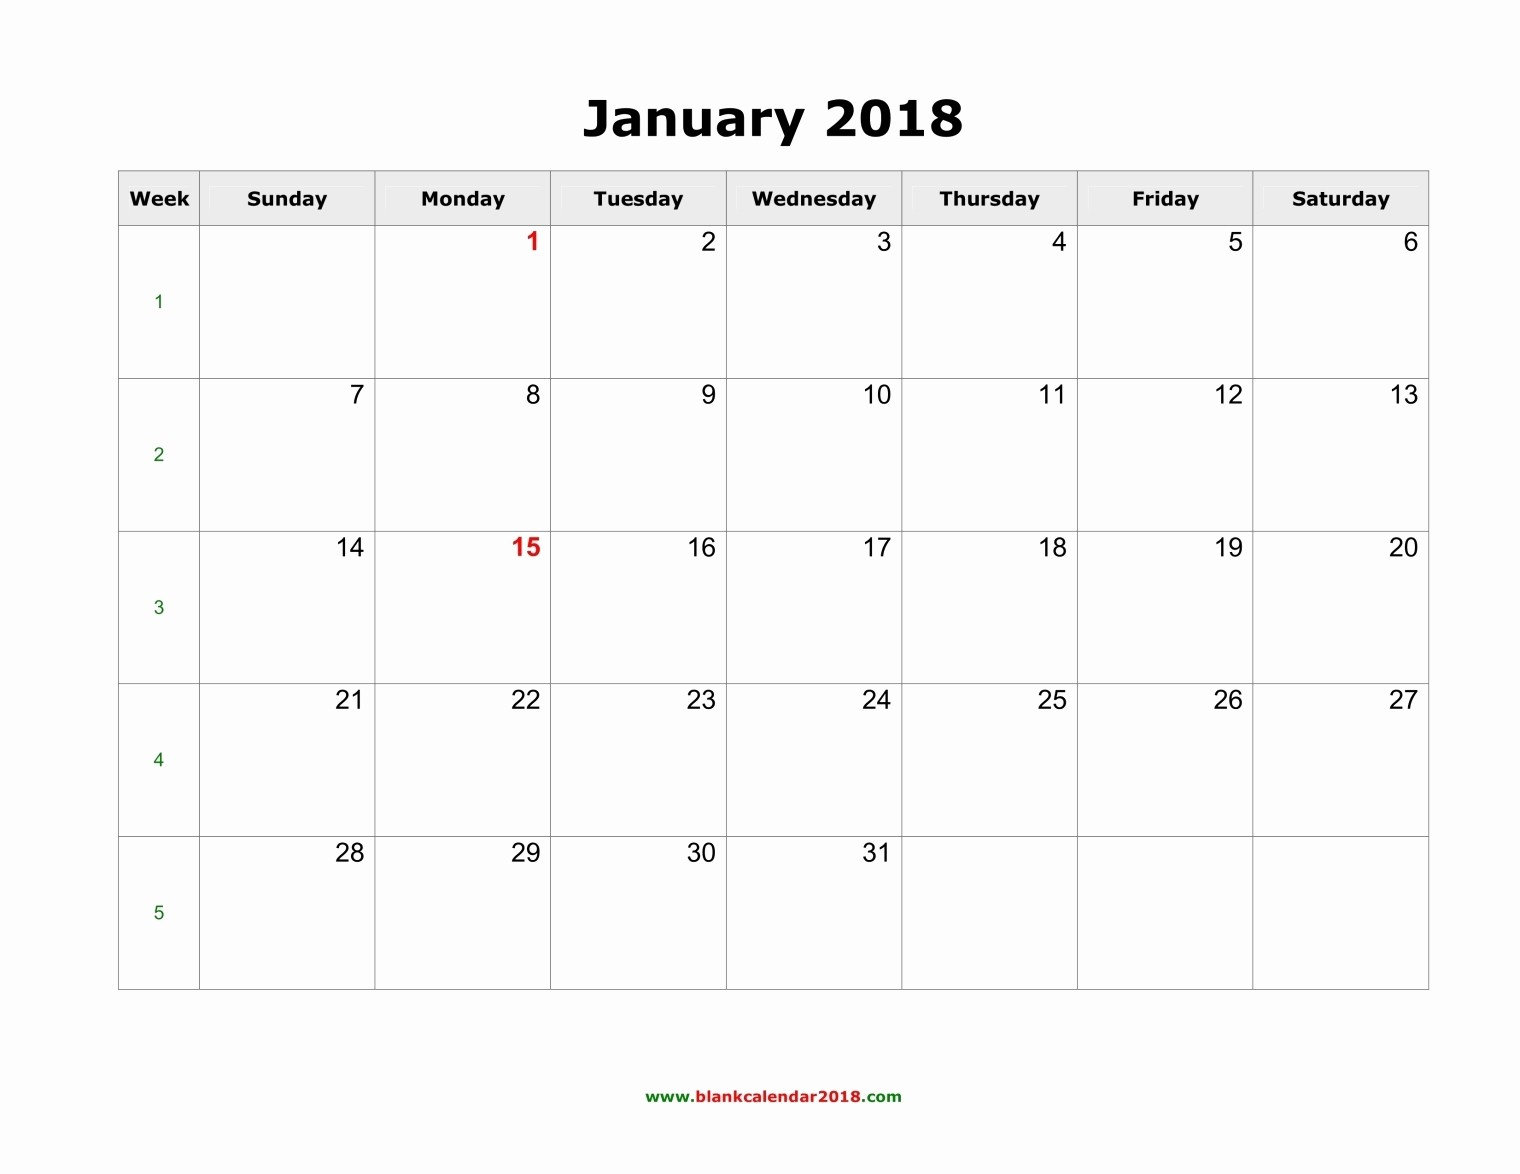 Blank January 2018 Calendar Printable Lovely Blank Calendar for January 2018